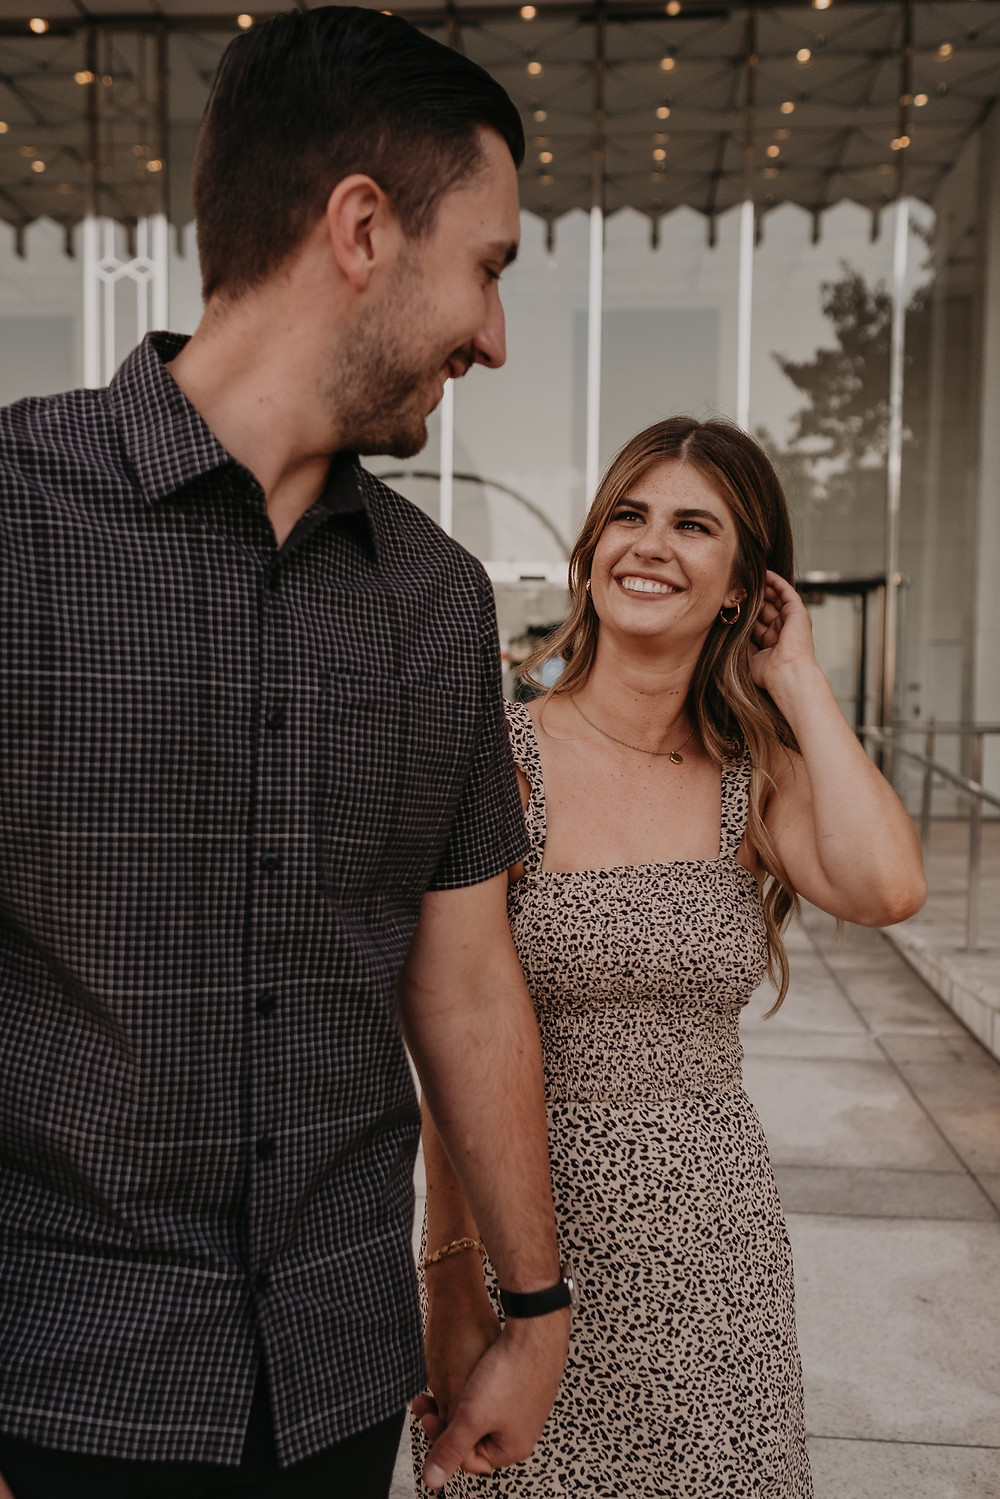 Couple in Downtown Detroit for casual engagement photos. Photographed by Nicole Leanne Photography.